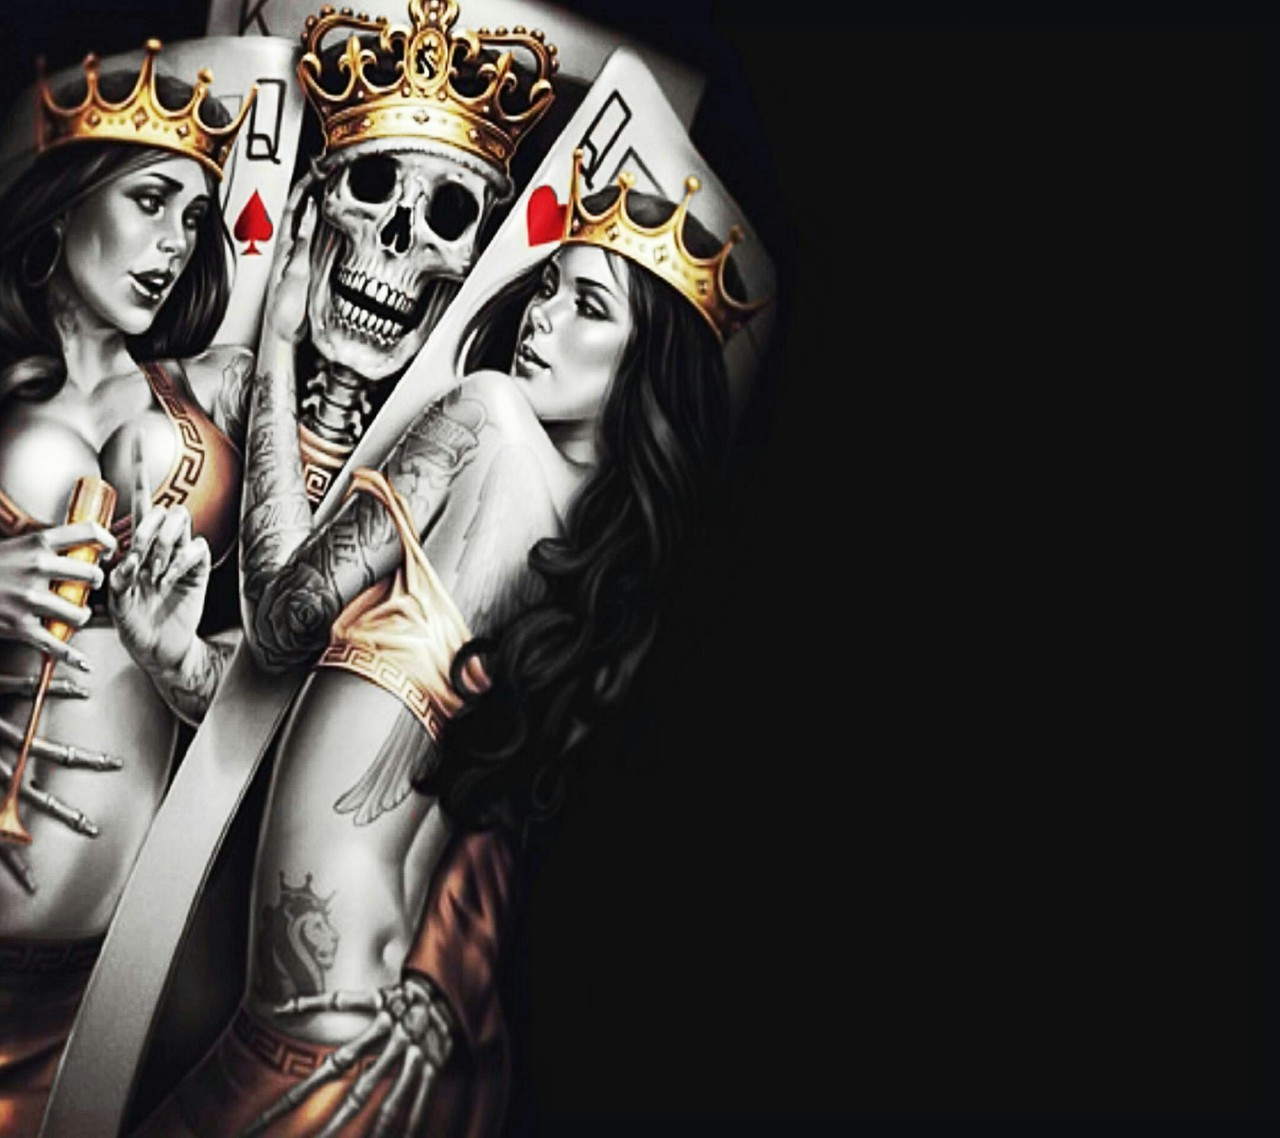 Hd Ink For Tattoos Wallpapers: King And Queen Wallpapers